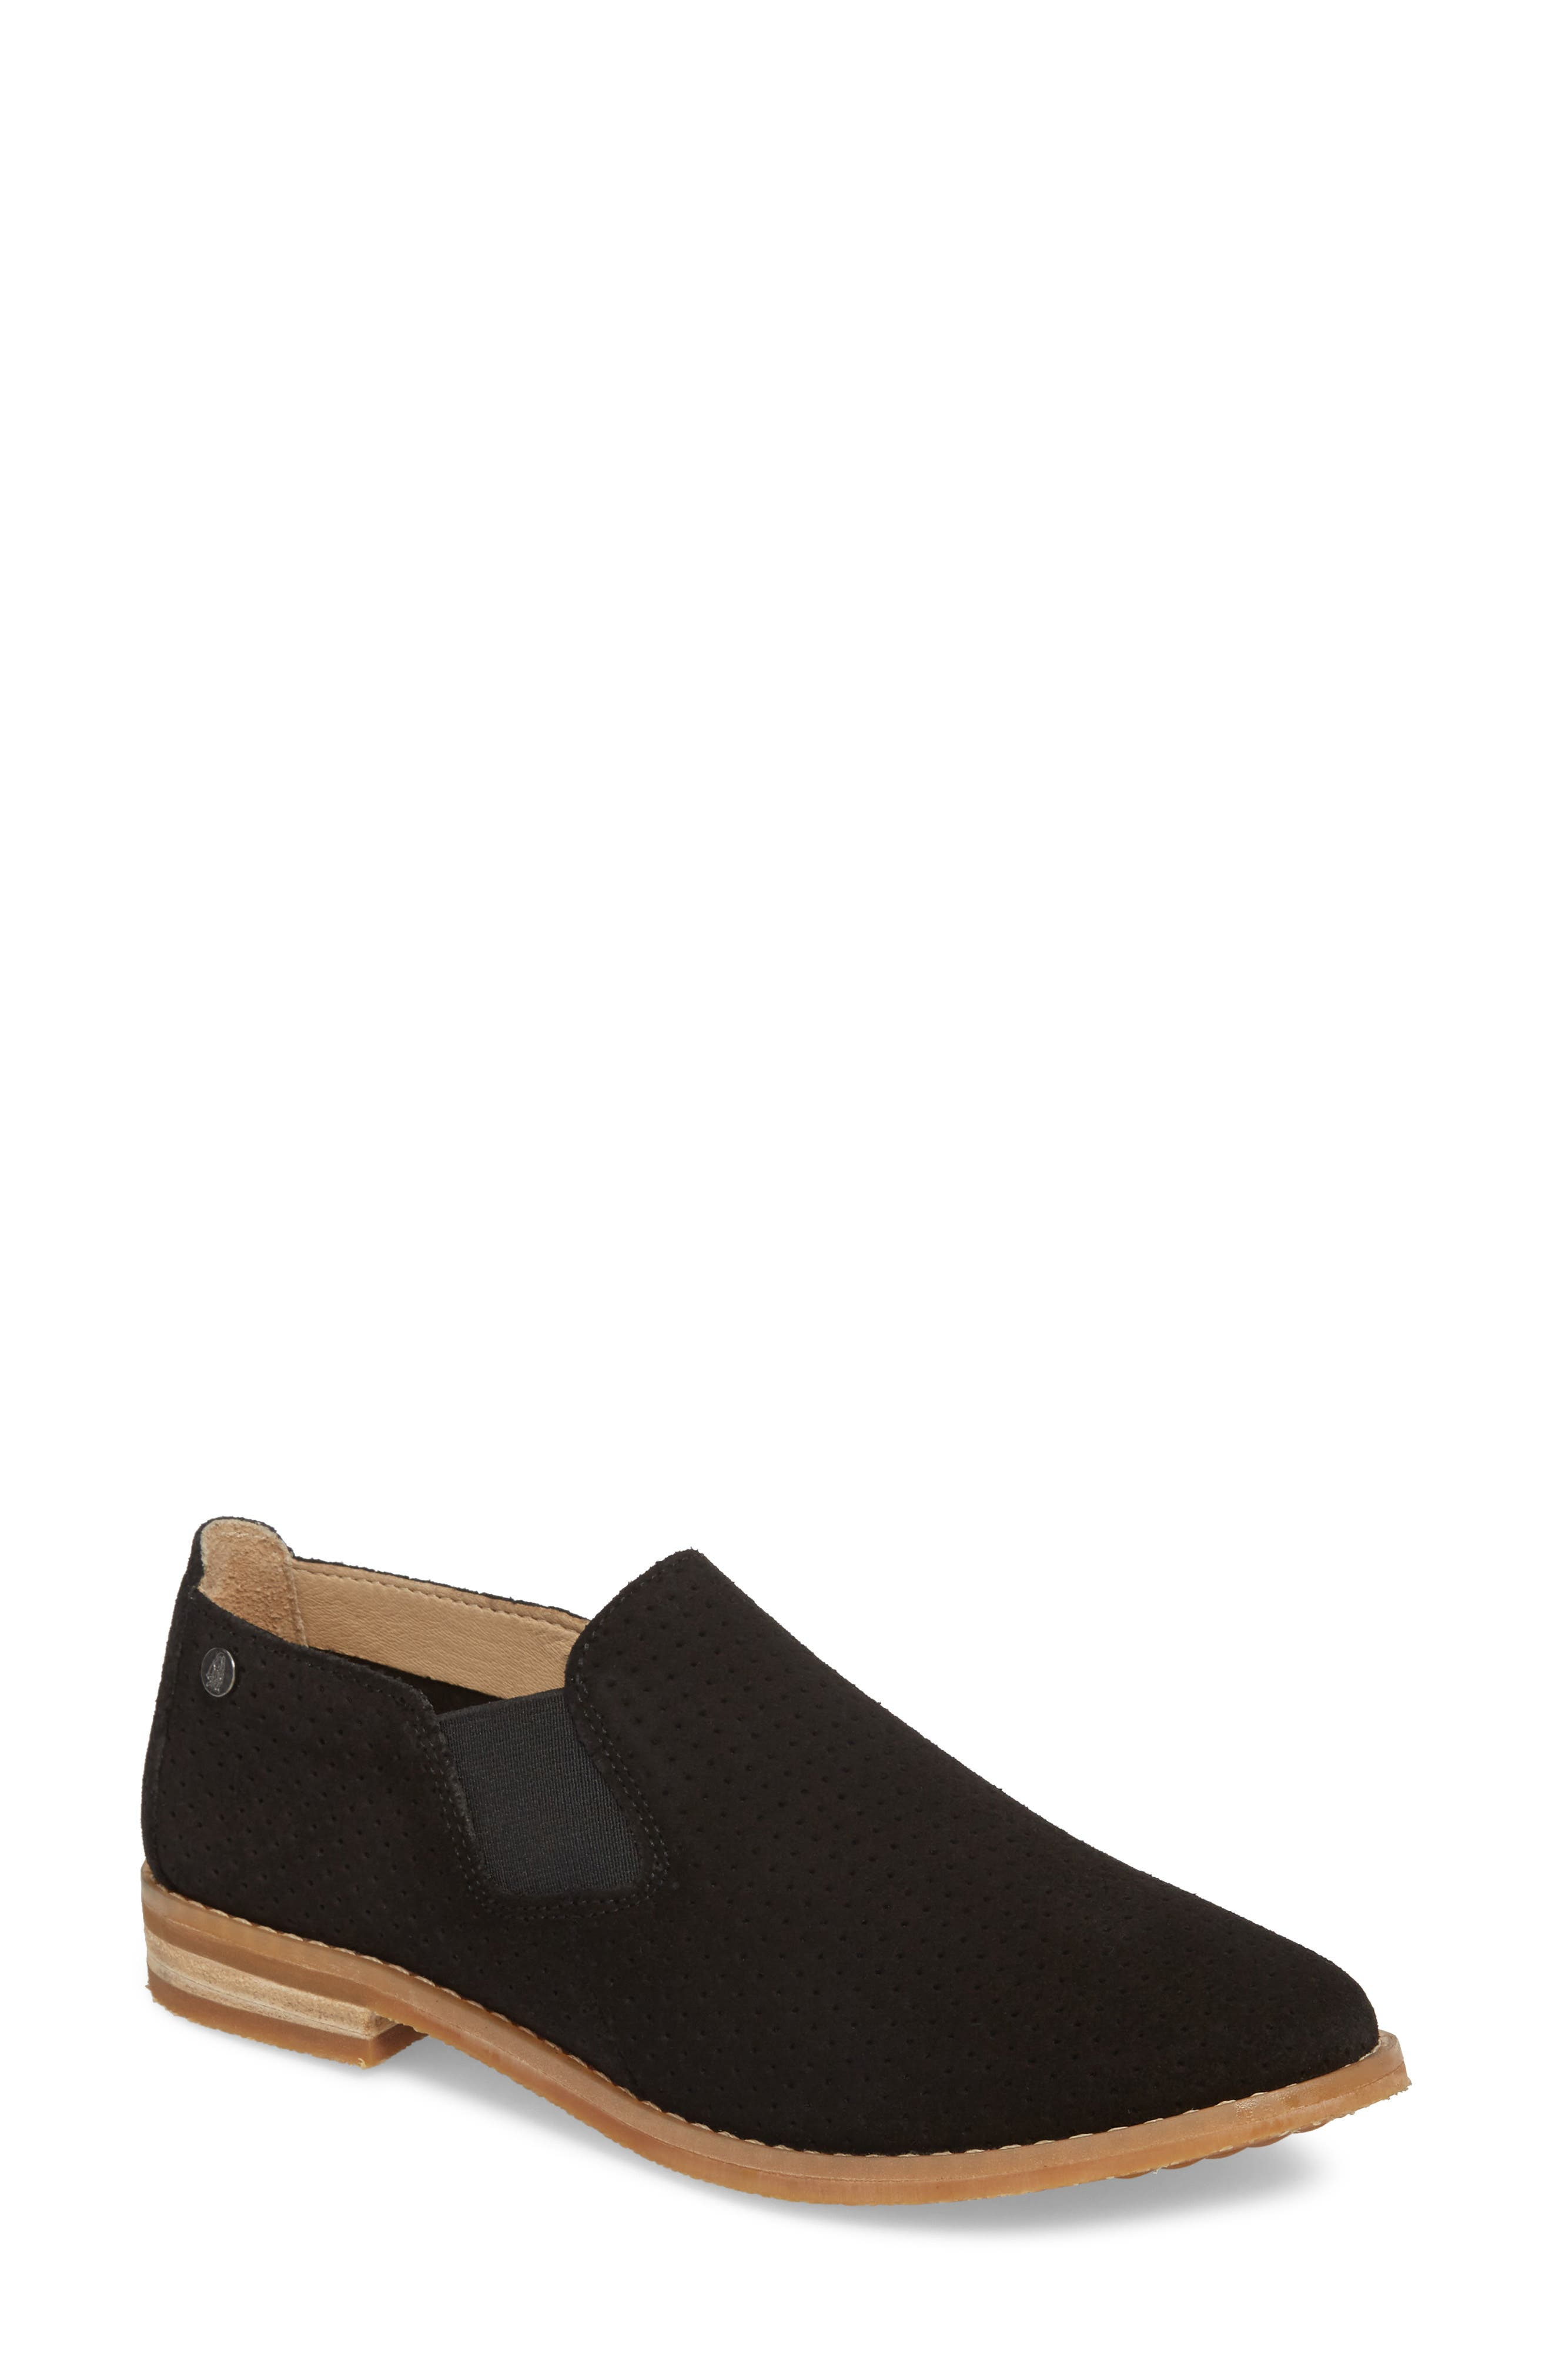 Hush Puppies Analise Clever Slip-On,                         Main,                         color, Black Perforated Suede